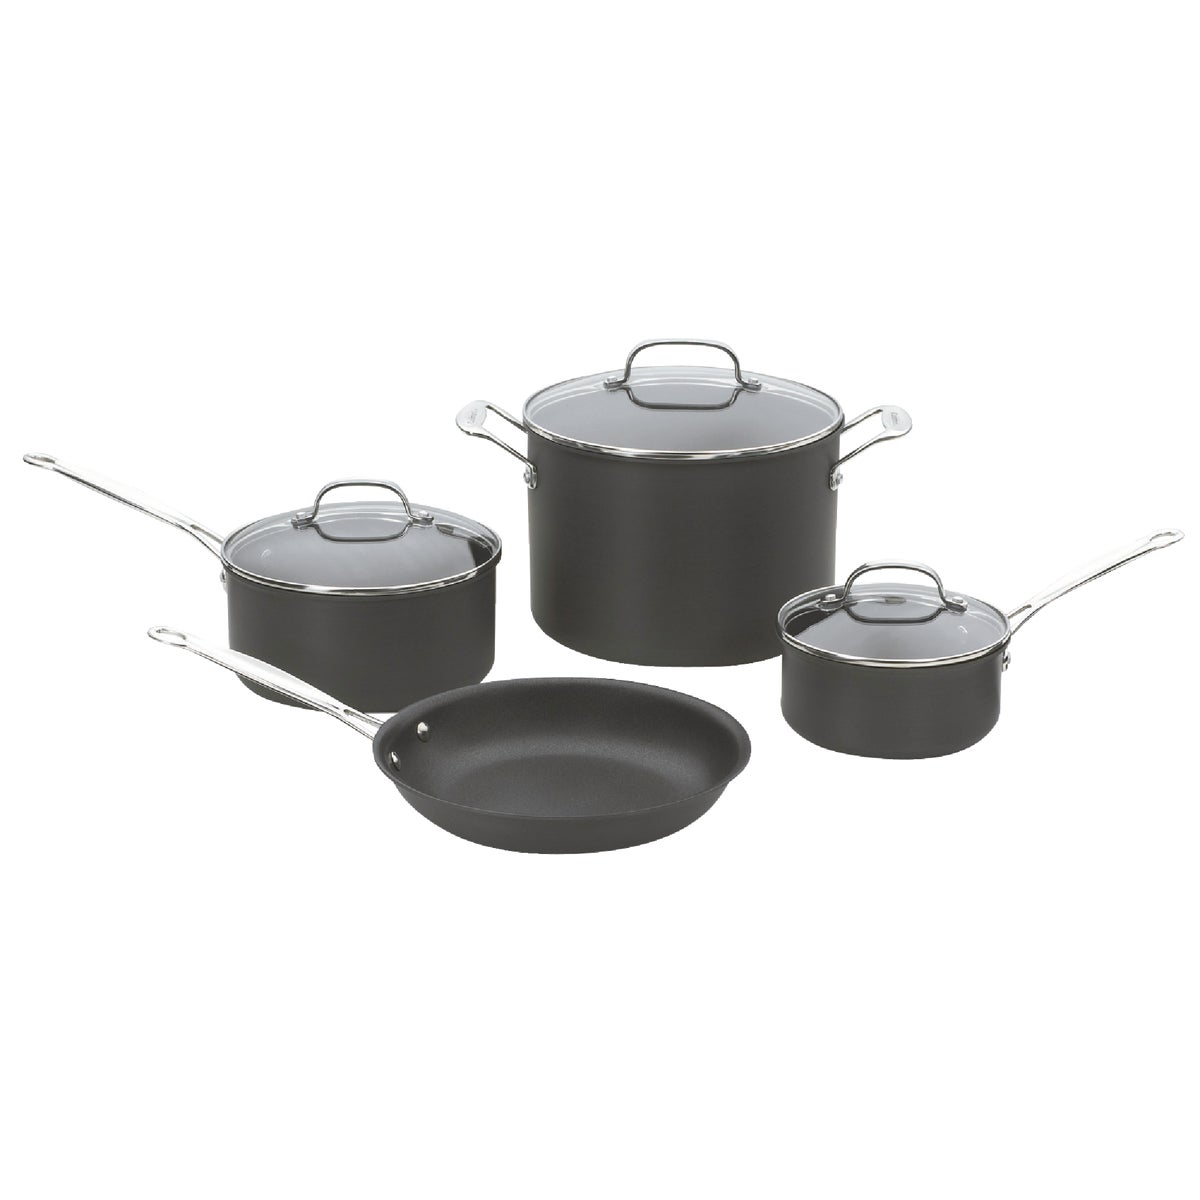 7PC ANODIZED COOKWARE